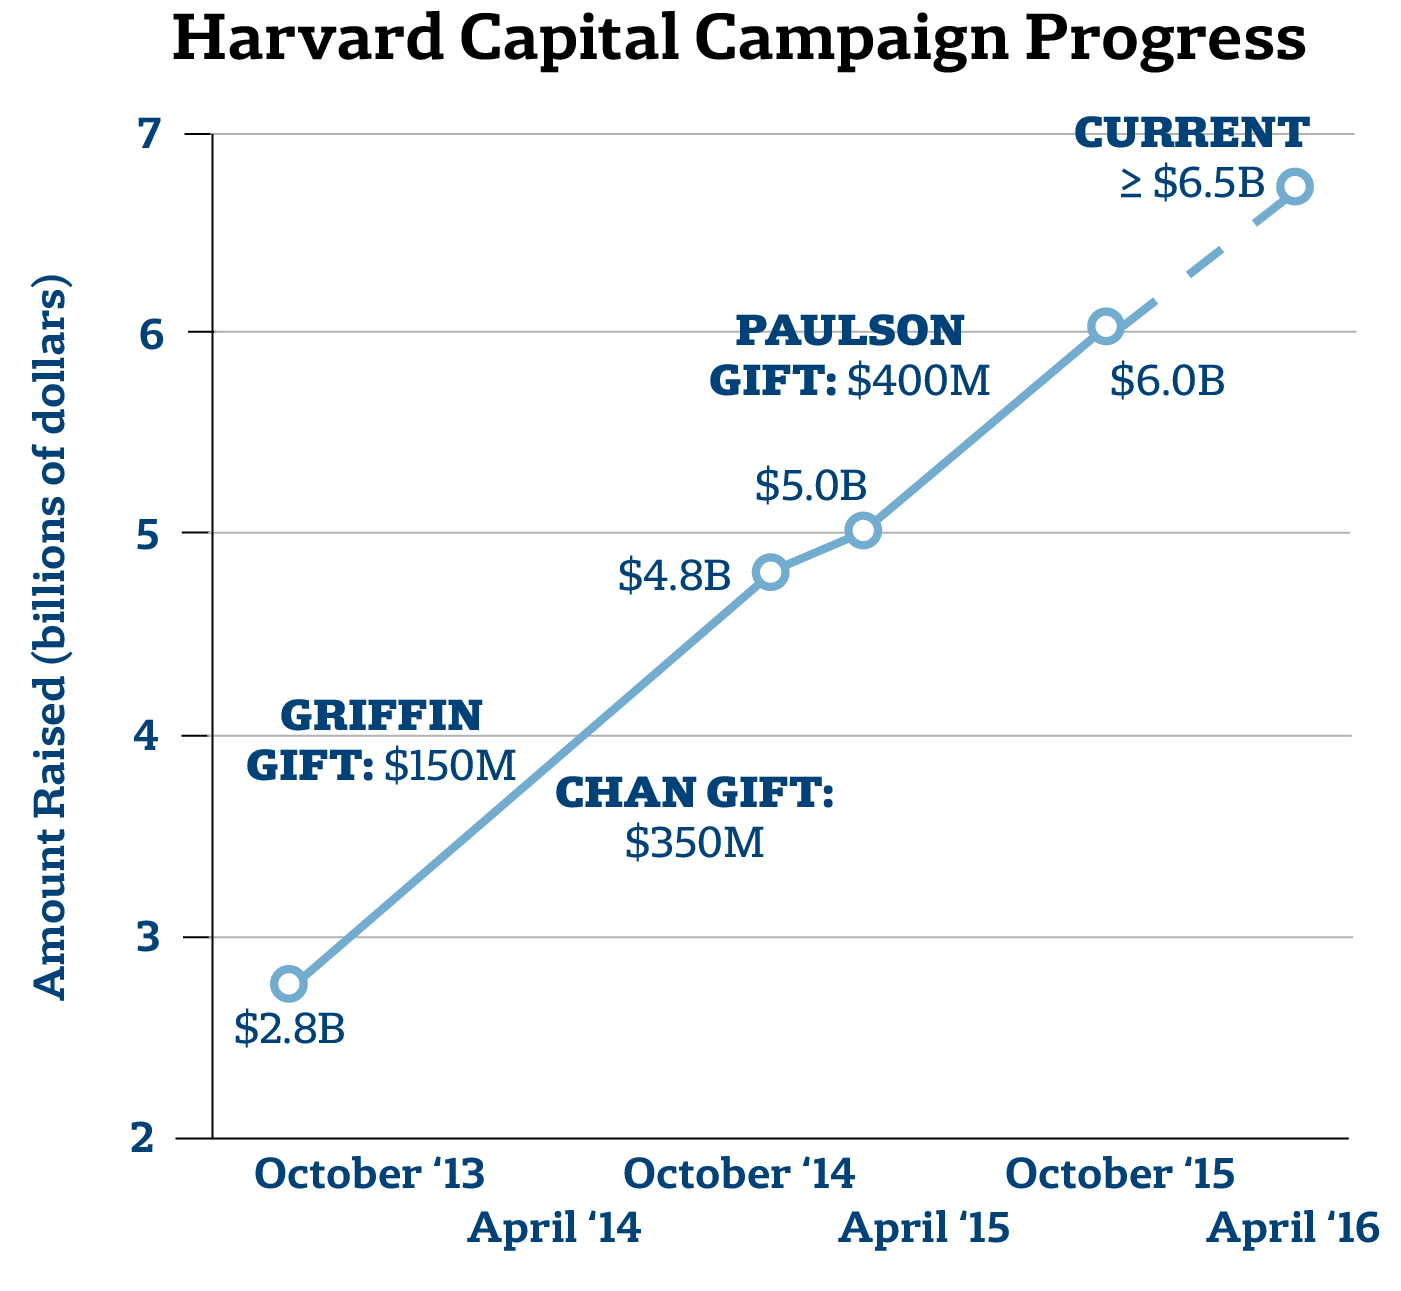 Harvard Capital Campaign Progress